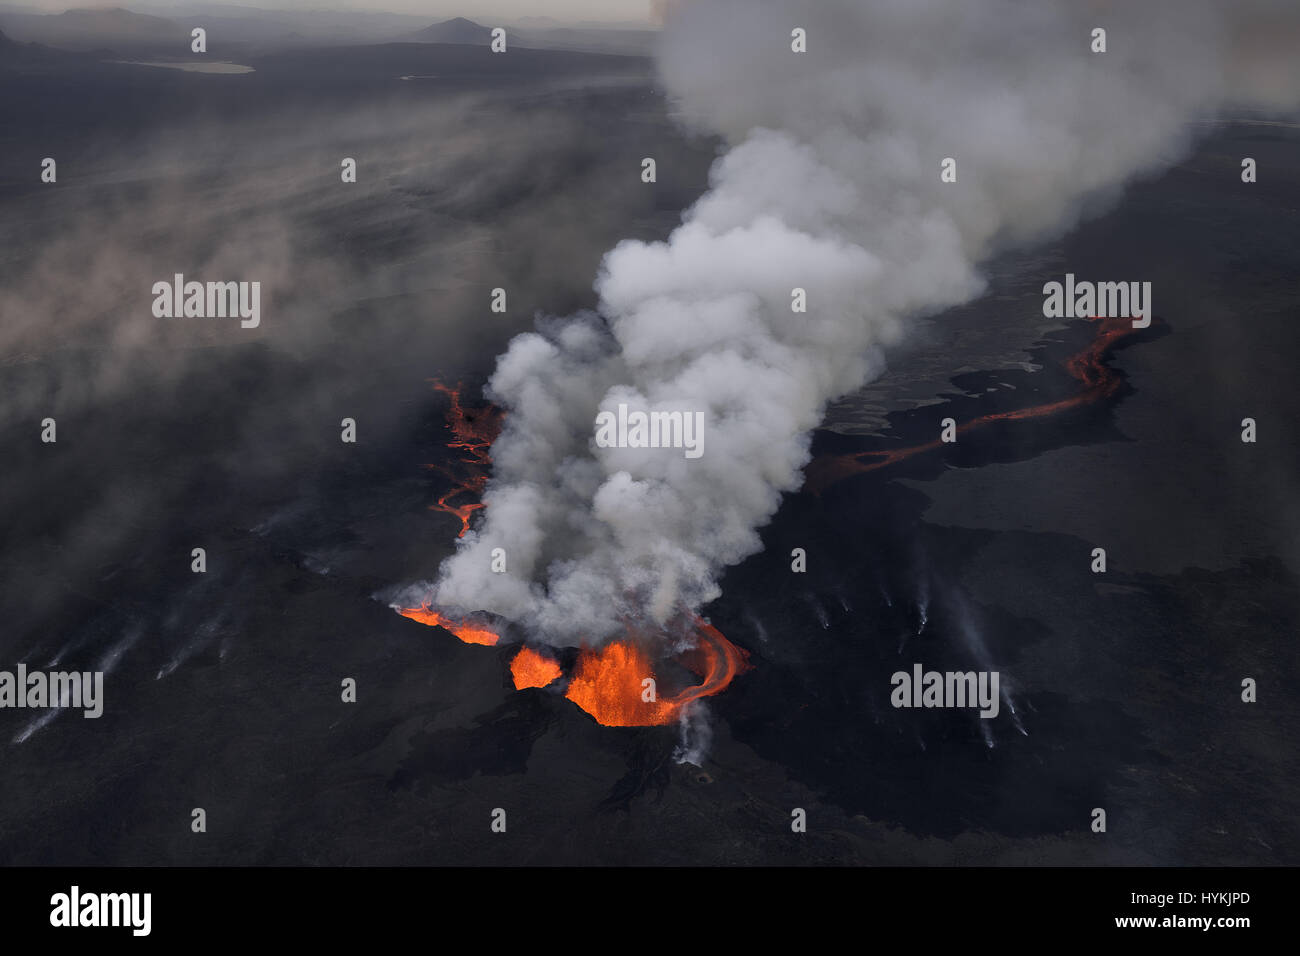 BARDARBUNGA VOLCANO, ICELAND: HANGING from a helicopter at speeds of 150-miles-per-hour over an erupting volcano - Stock Image